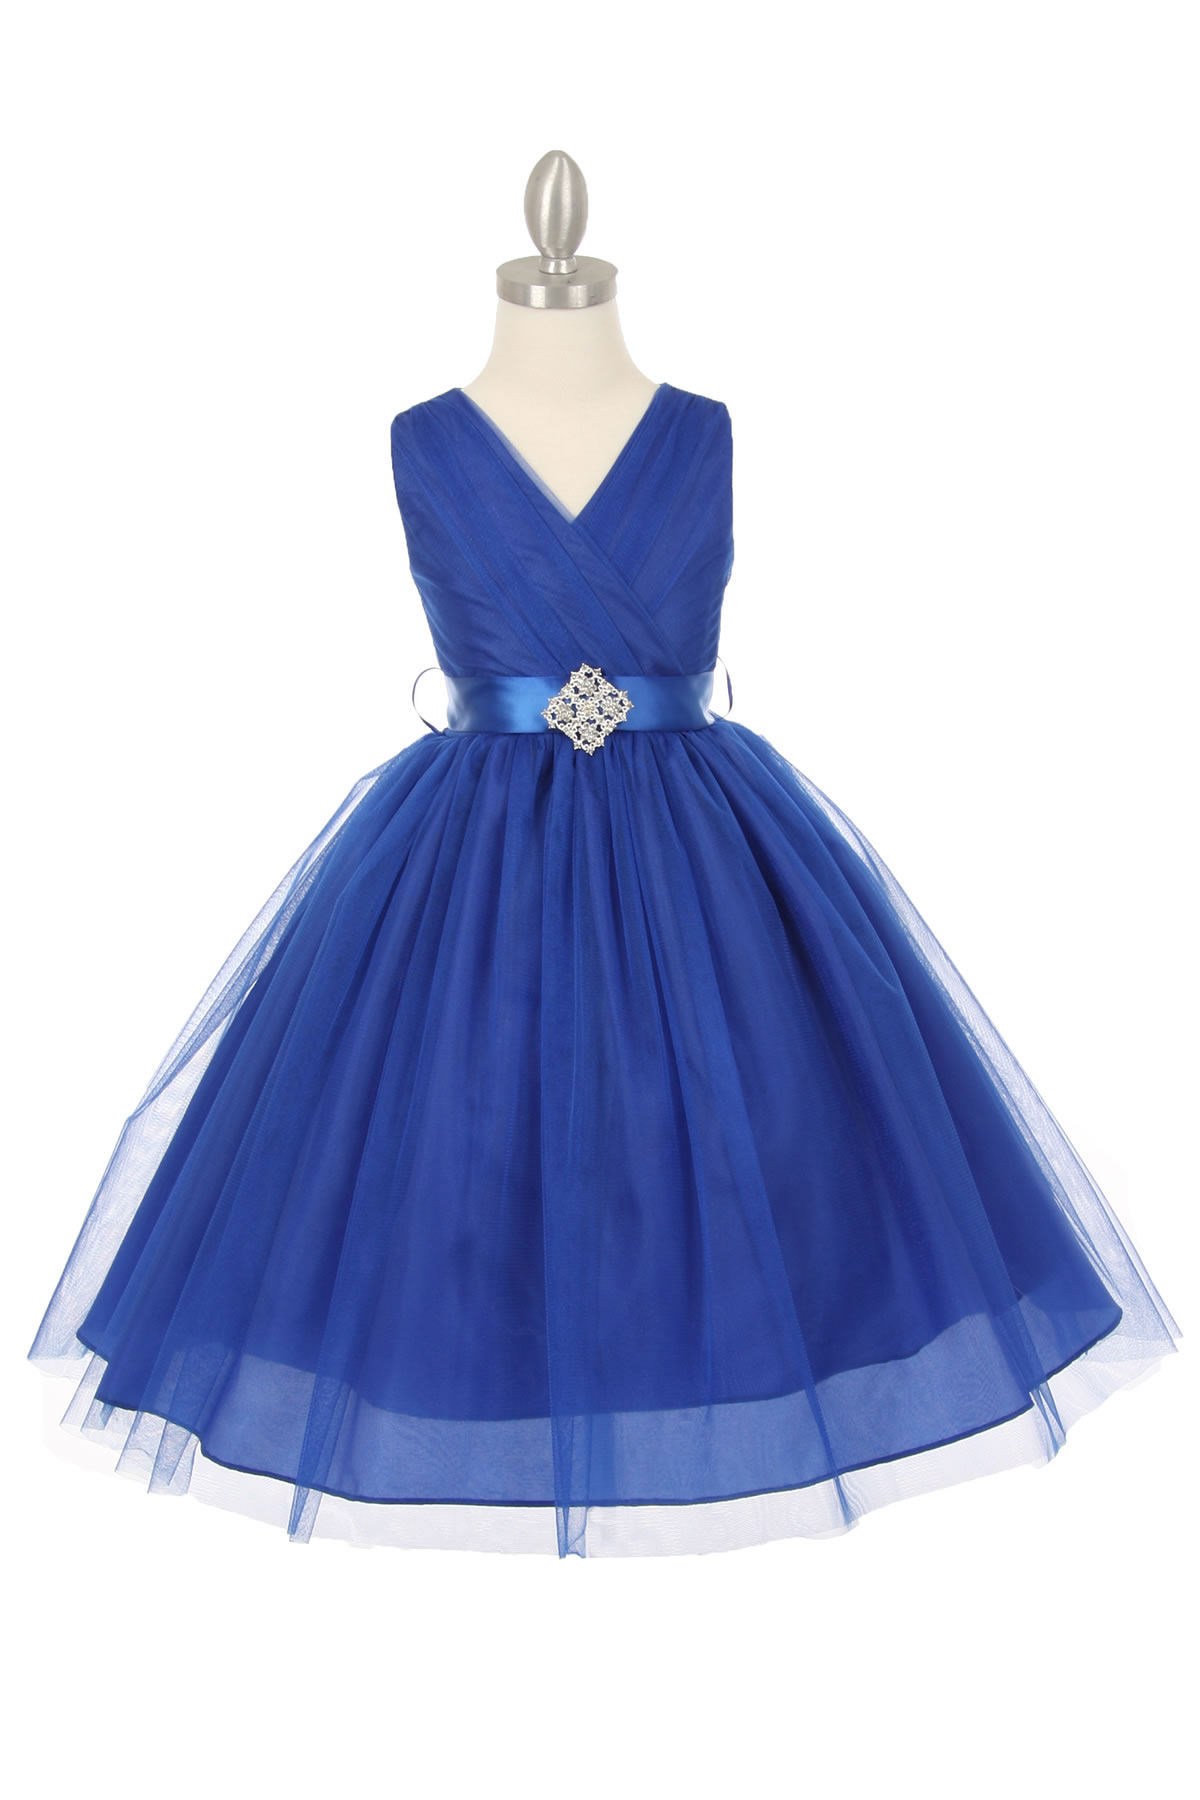 Blue 7 Girl Dress 14 Sizes